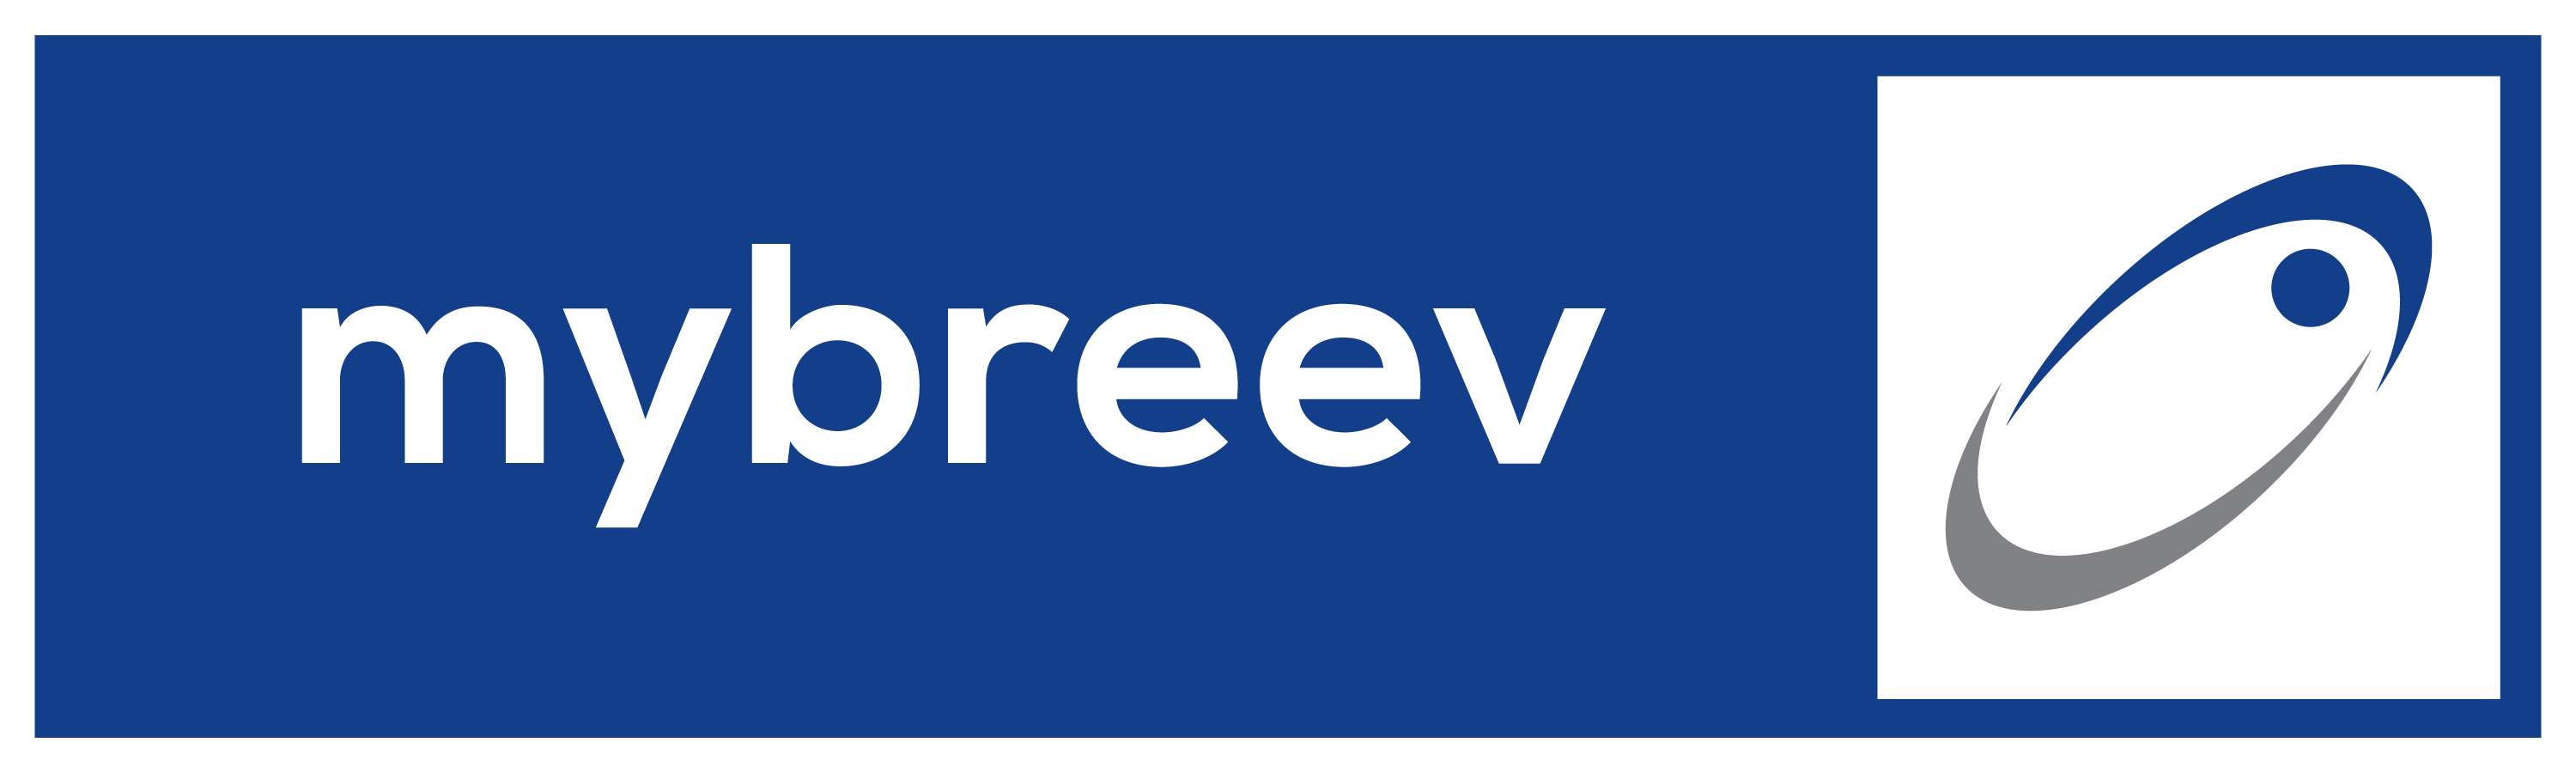 Mybreev Logo Design High Resolution